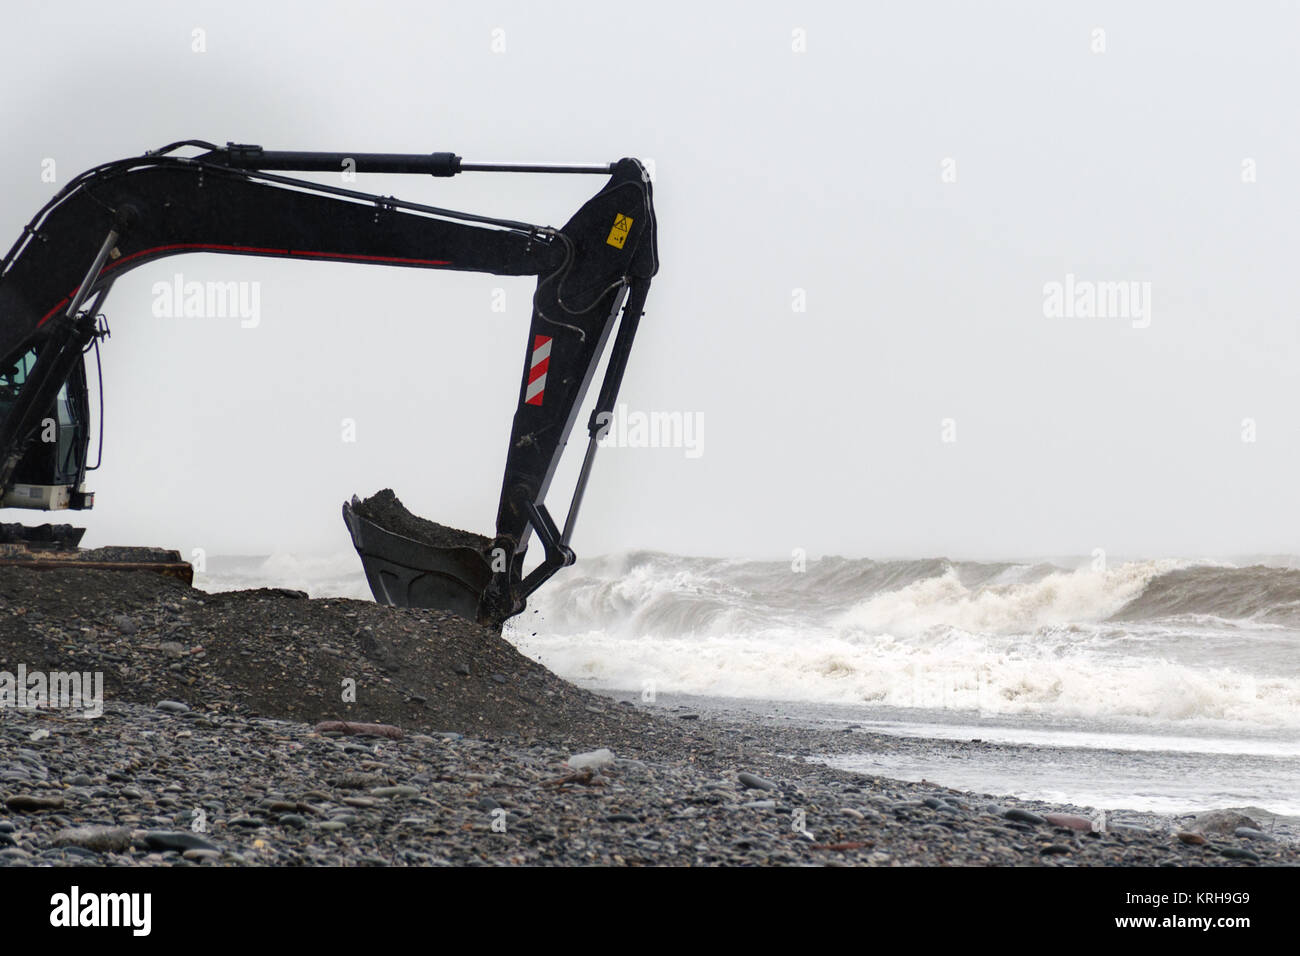 The excavator works with a bucket full of stones on the seashore in stormy weather. - Stock Image